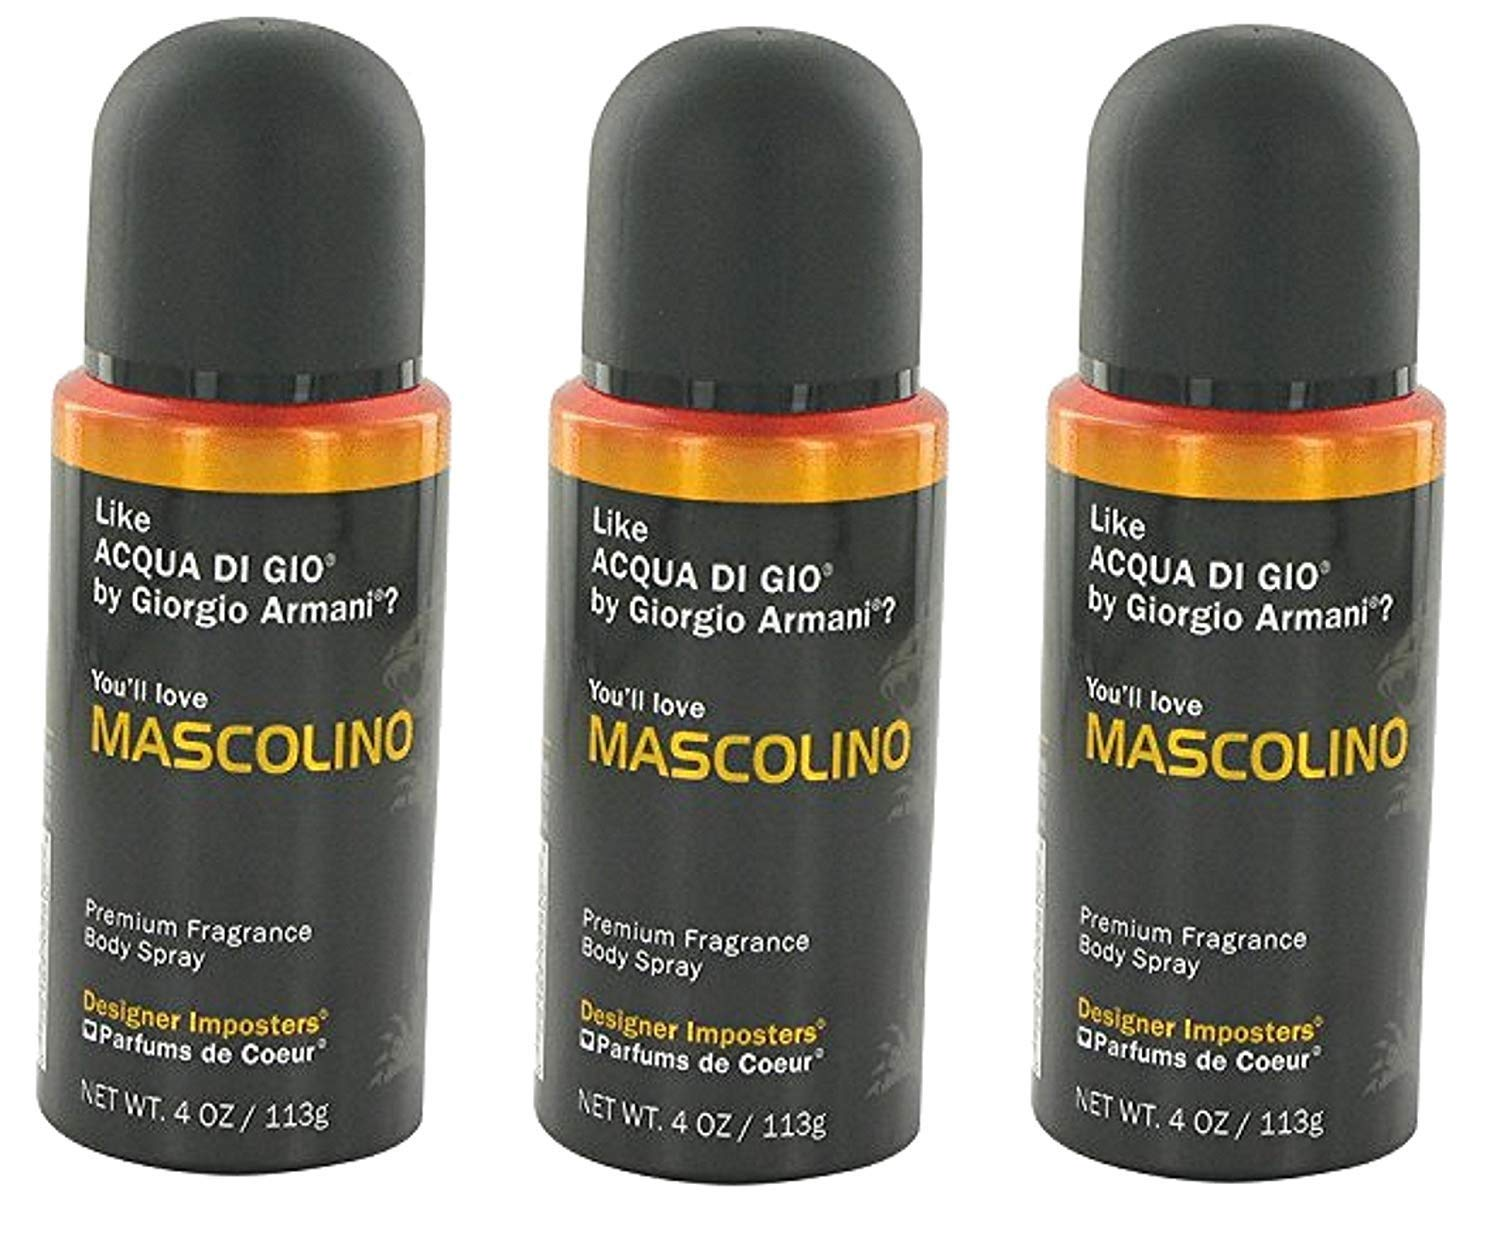 Designer Imposters Mascolino by Parfums De Coeur Body Spray 4 oz for Men (SET OF 3)